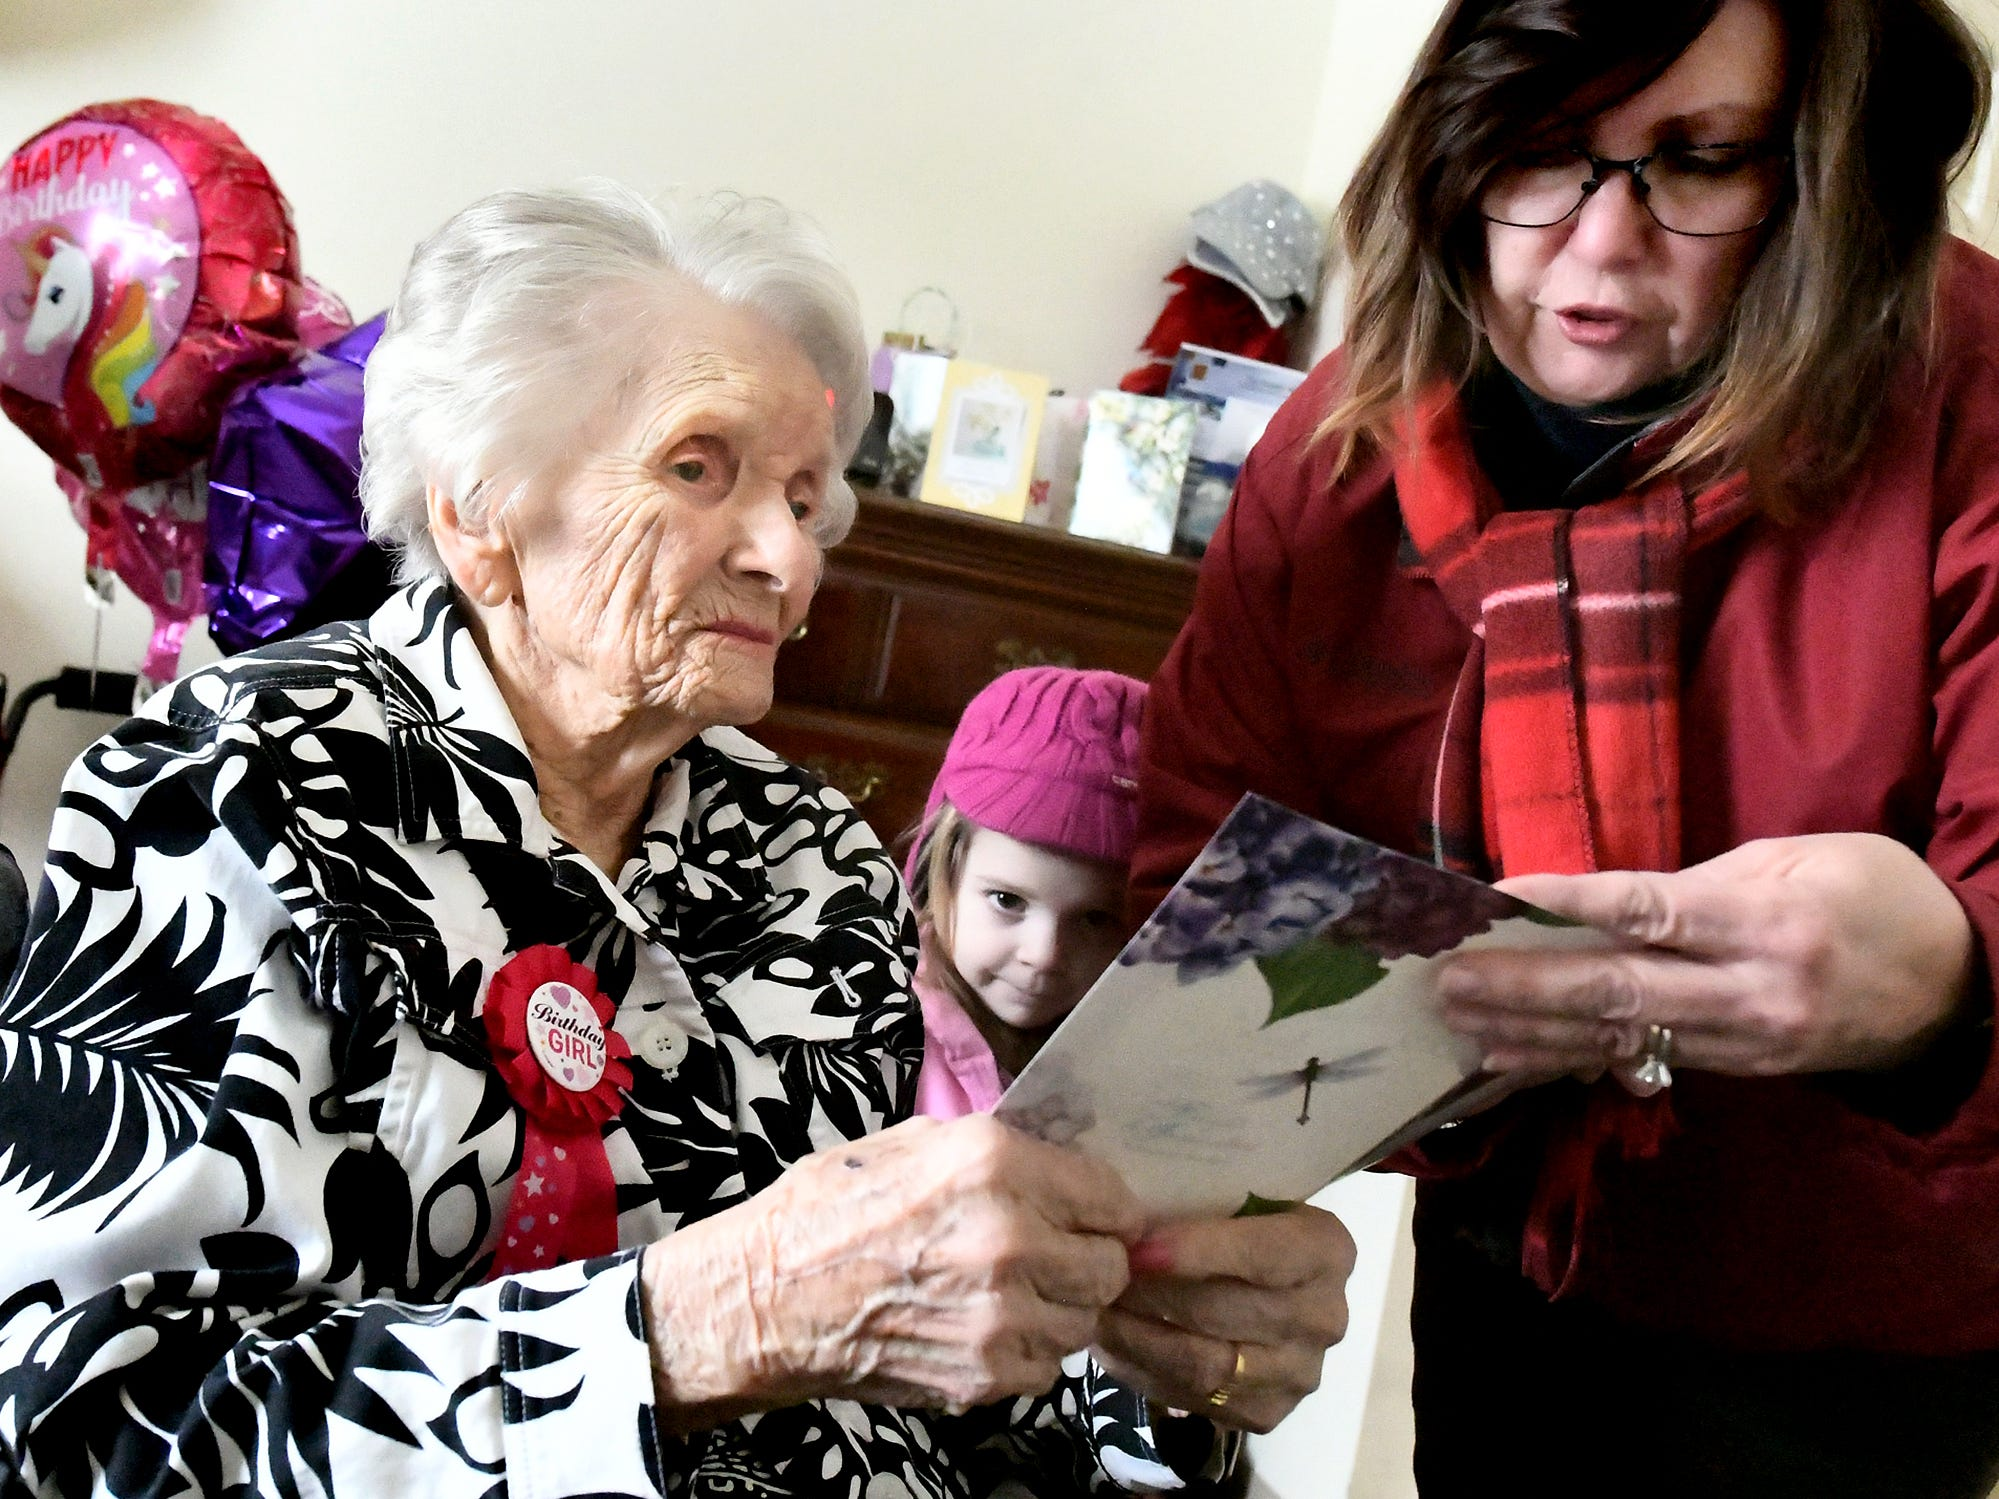 Stephanie Abel reads a birthday card she got for her grandmother Ruth Kohler along with Ruth's great-granddaughter Kahleigh Abel, 4, on her 104th birthday at Senior Commons at Powder Mill where Ruth is a resident Friday, Feb. 1, 2019. According to Senior Commons staff, she is the oldest resident to have lived there. Bill Kalina photo